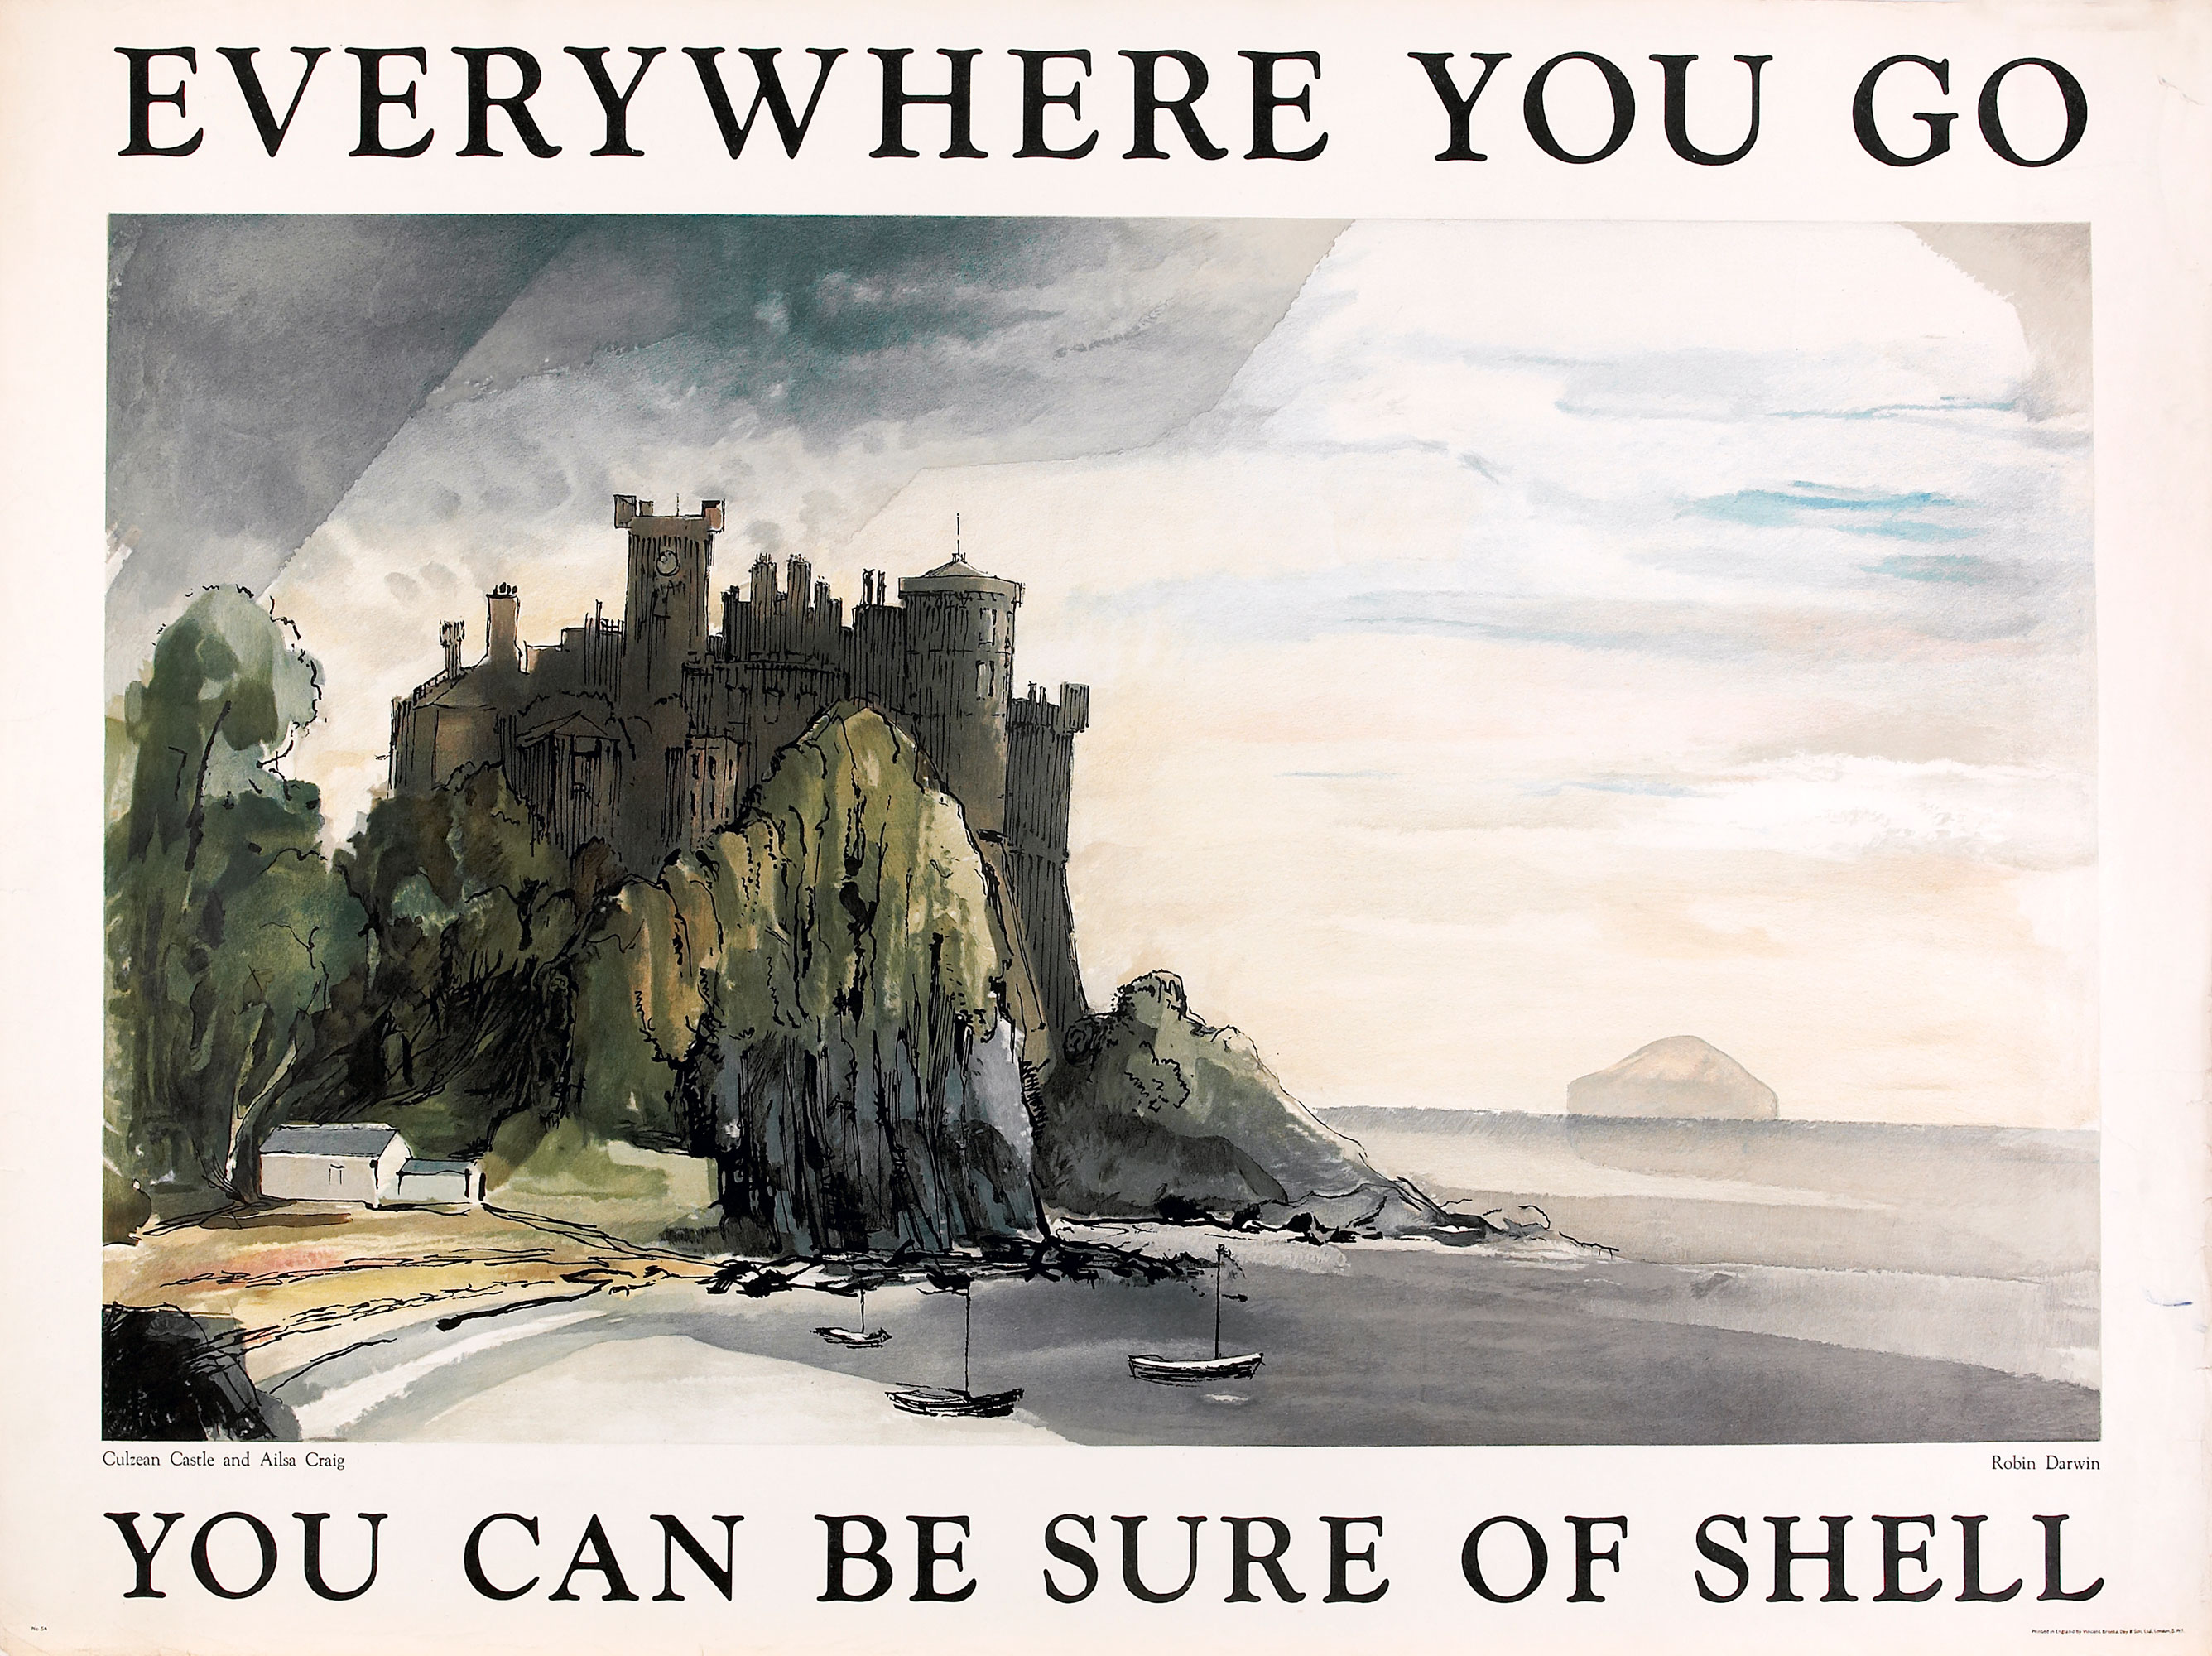 Shell poster number 1554, Culzean Castle and Ailsa Craig (1952) by Robin Darwin. Painting of Culzean Castle, with sailing boats in the foreground. Used as part of Shell's 'Everywhere you Go' campaign, which was revived following WWII.